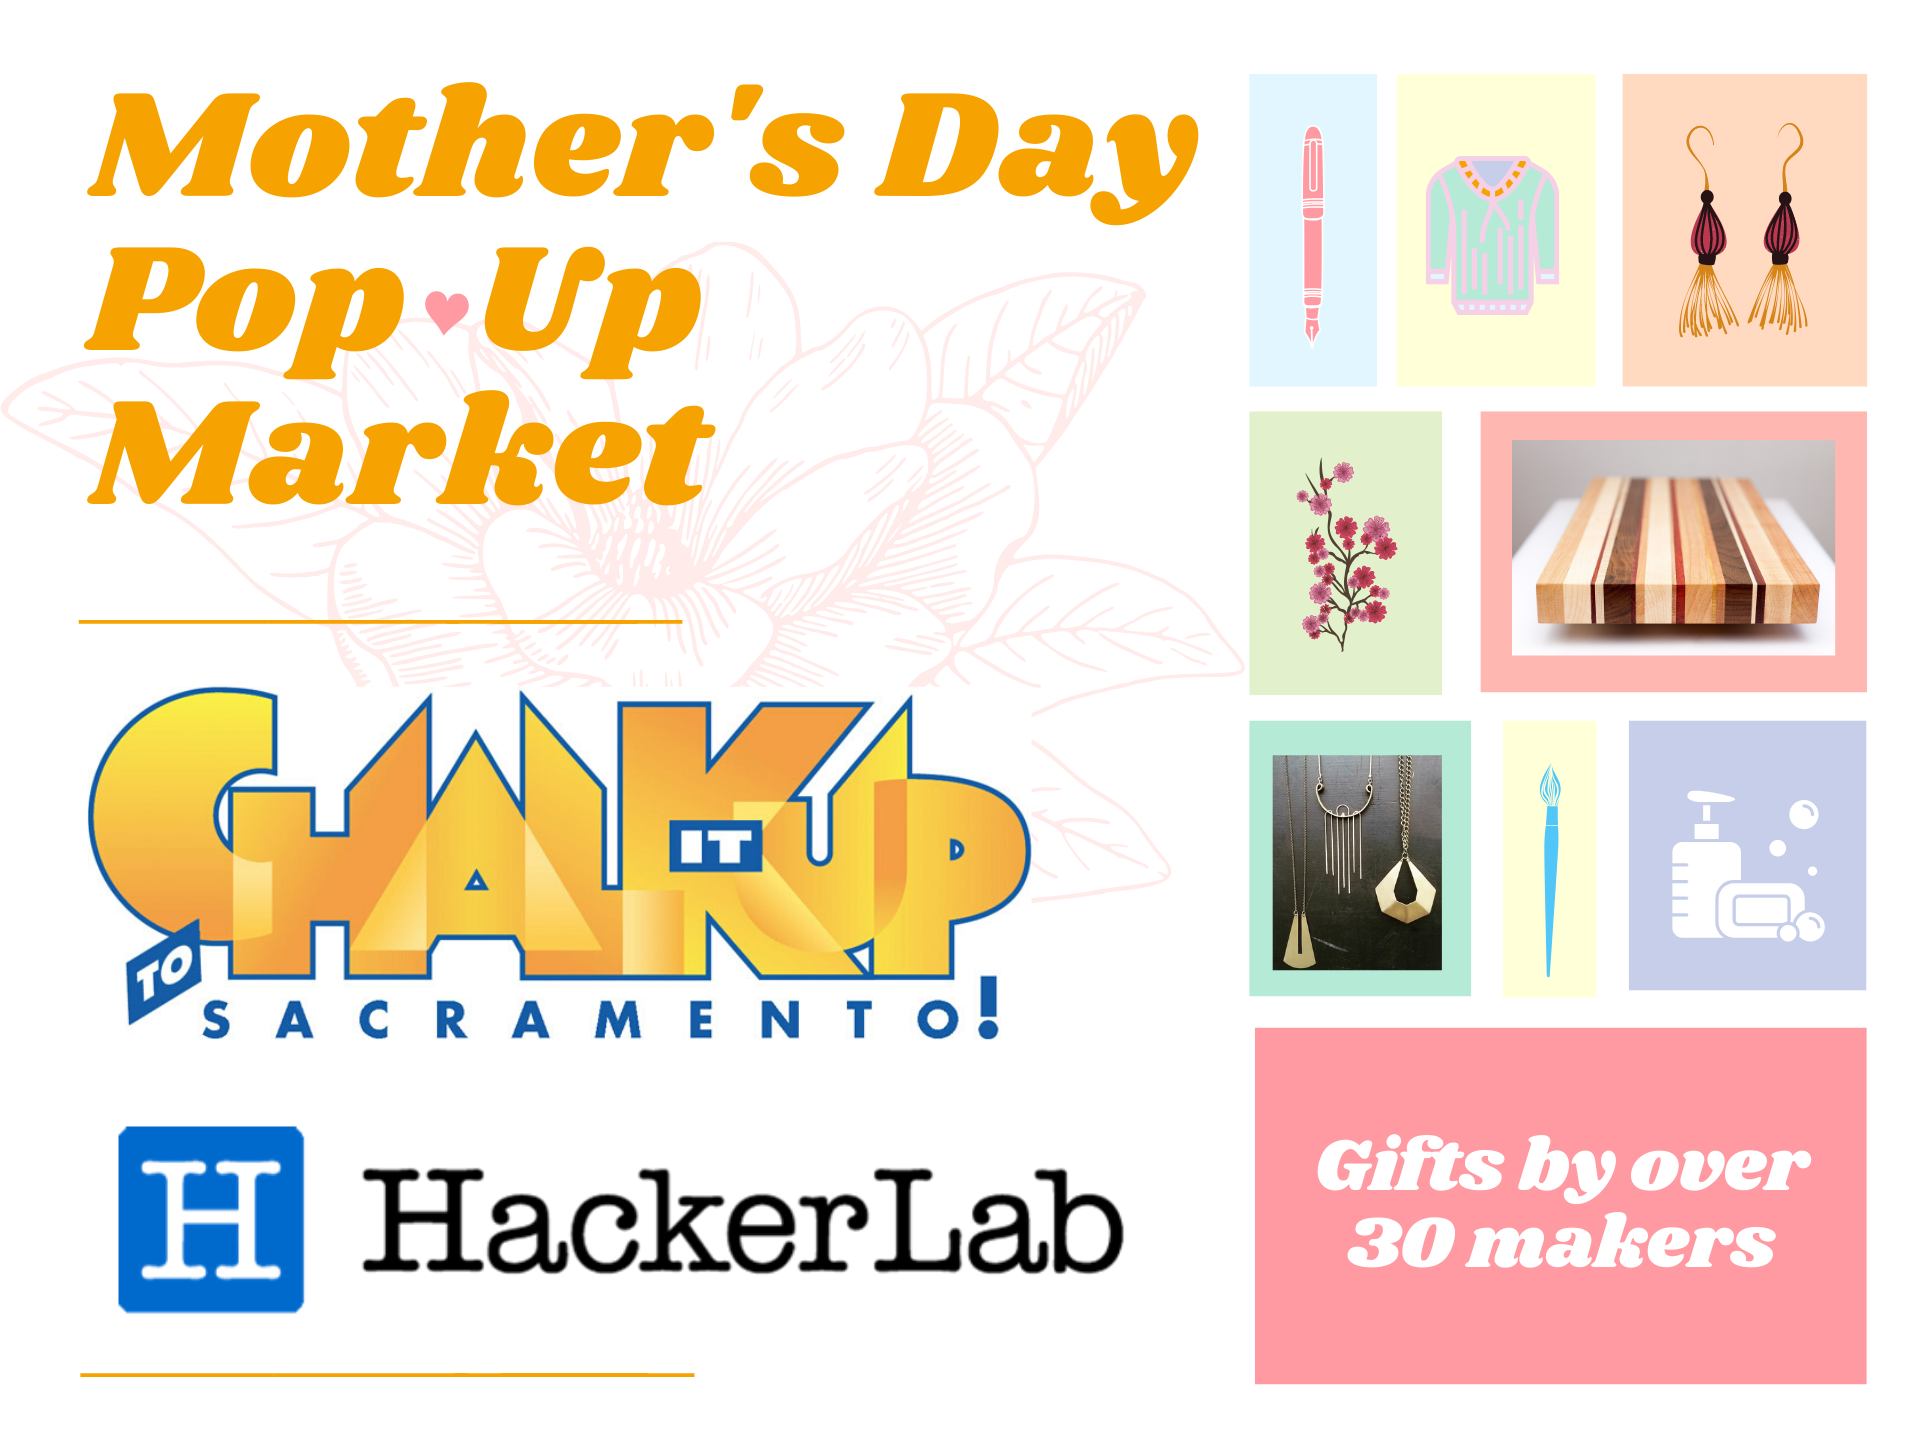 Mother's Day Pop-Up Market